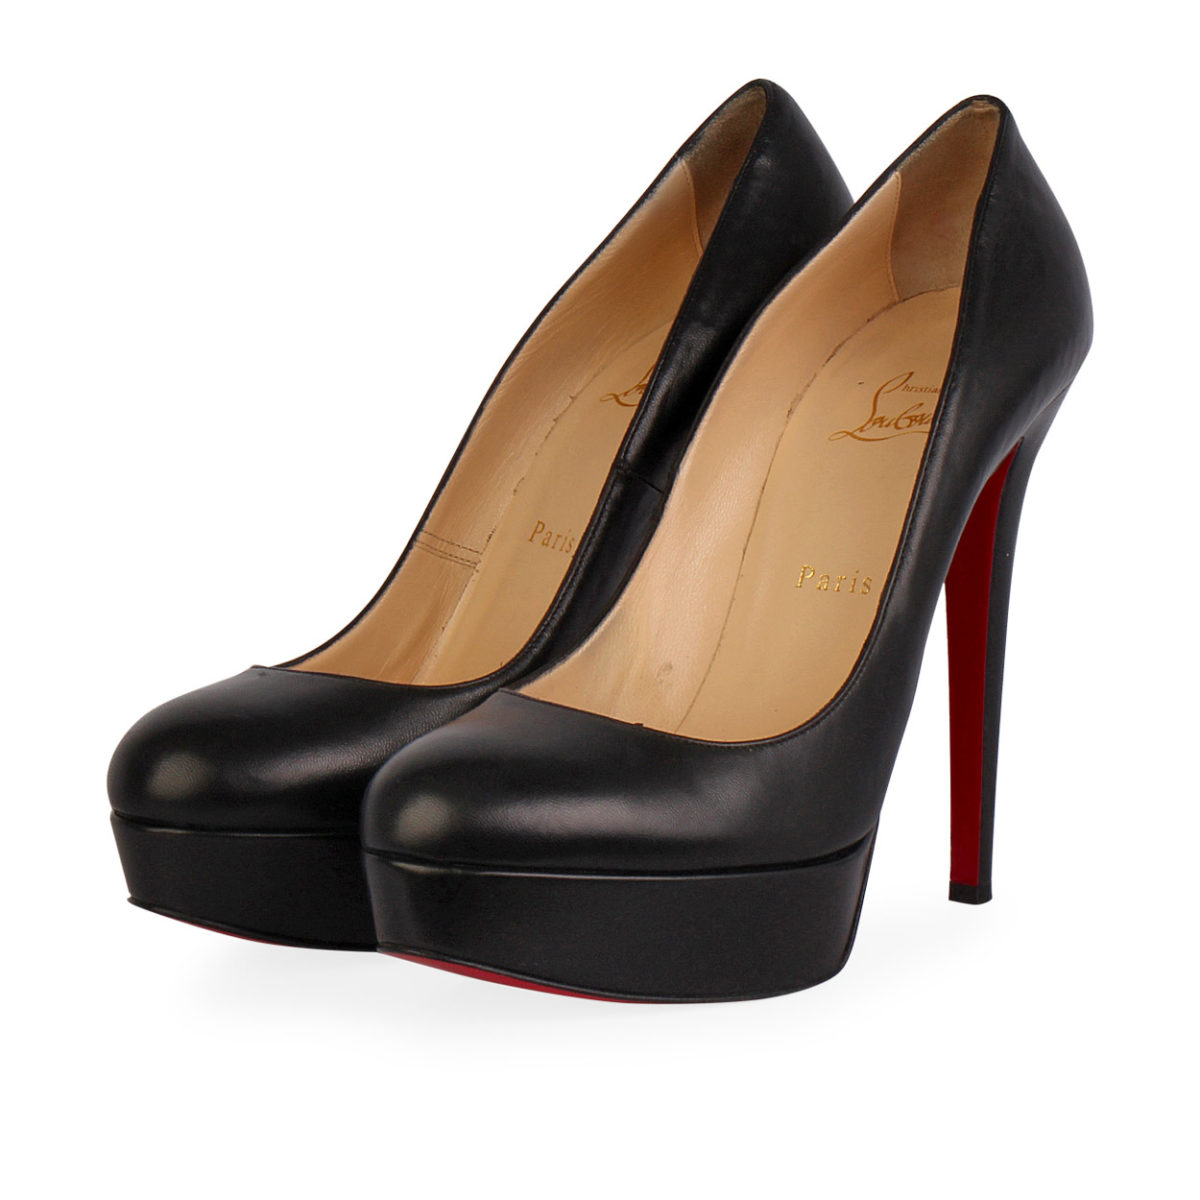 louboutin paris 6